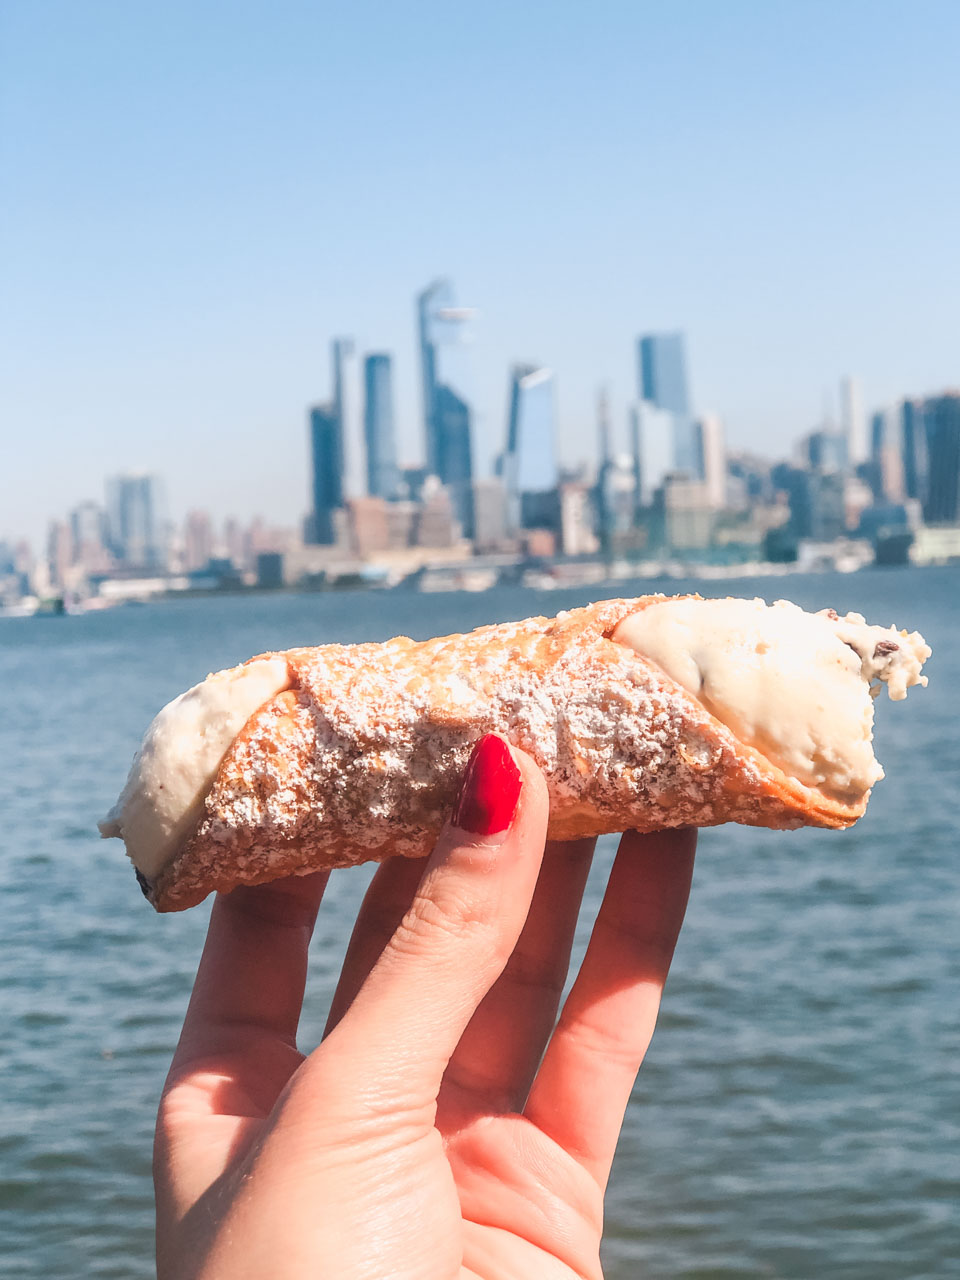 A girl holding a cannoli from Carlo's Bake Shop with the Manhattan skyline in the background